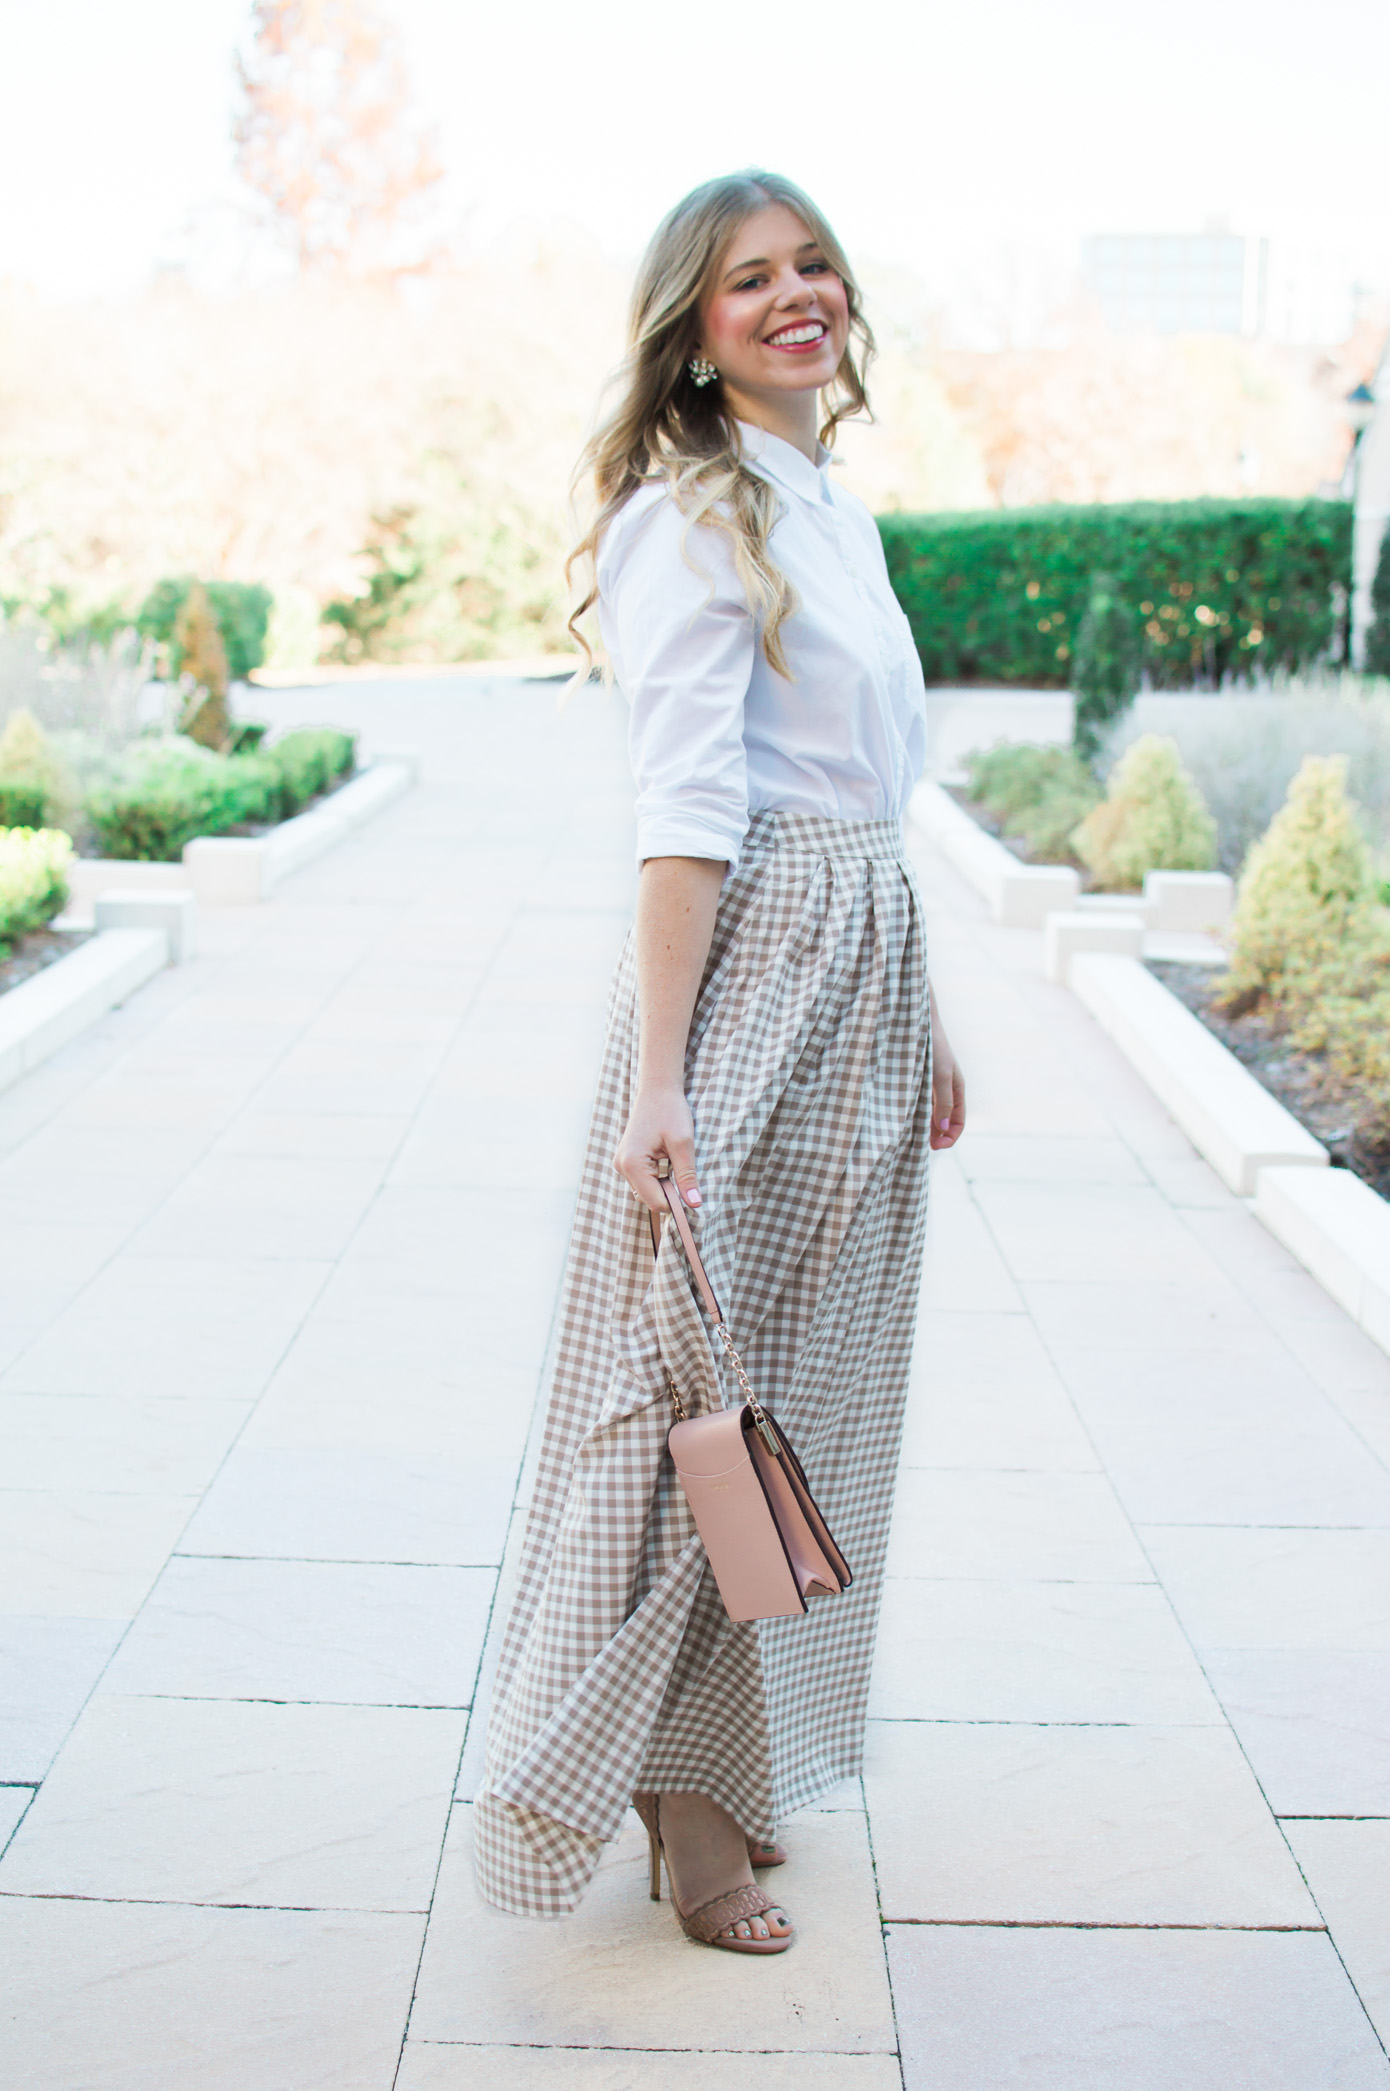 Gingham Maxi Skirt | Holiday Party Outfit Idea | Louella Reese Life & Style Blog